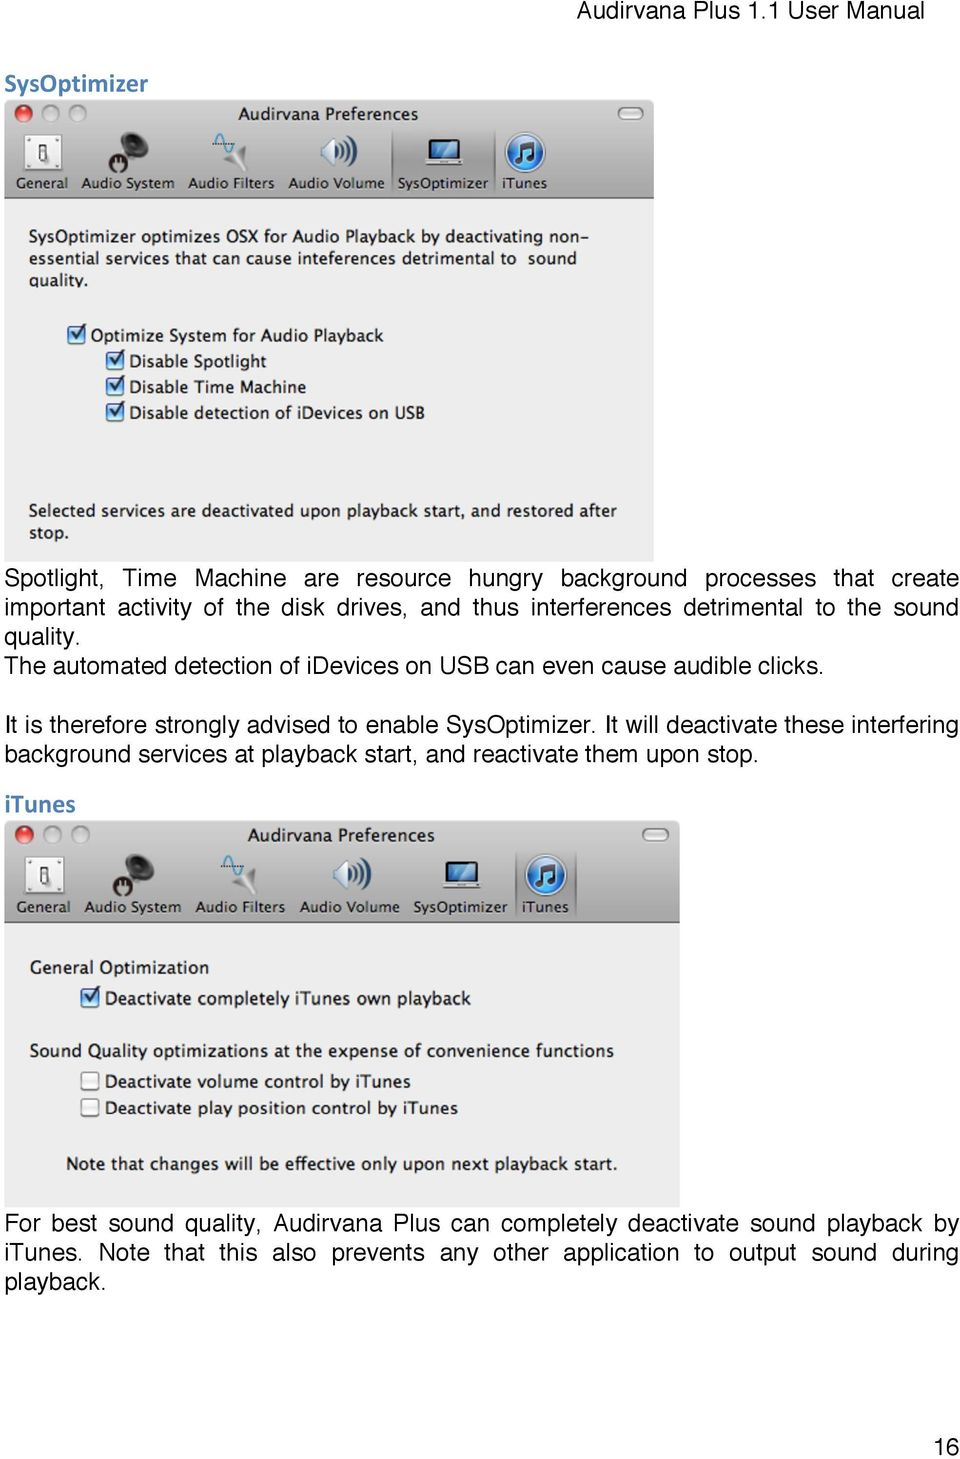 Audirvana Plus 11 User Manual Pdf Itunes 500k Add Funds It Is Therefore Strongly Advised To Enable Sysoptimizer